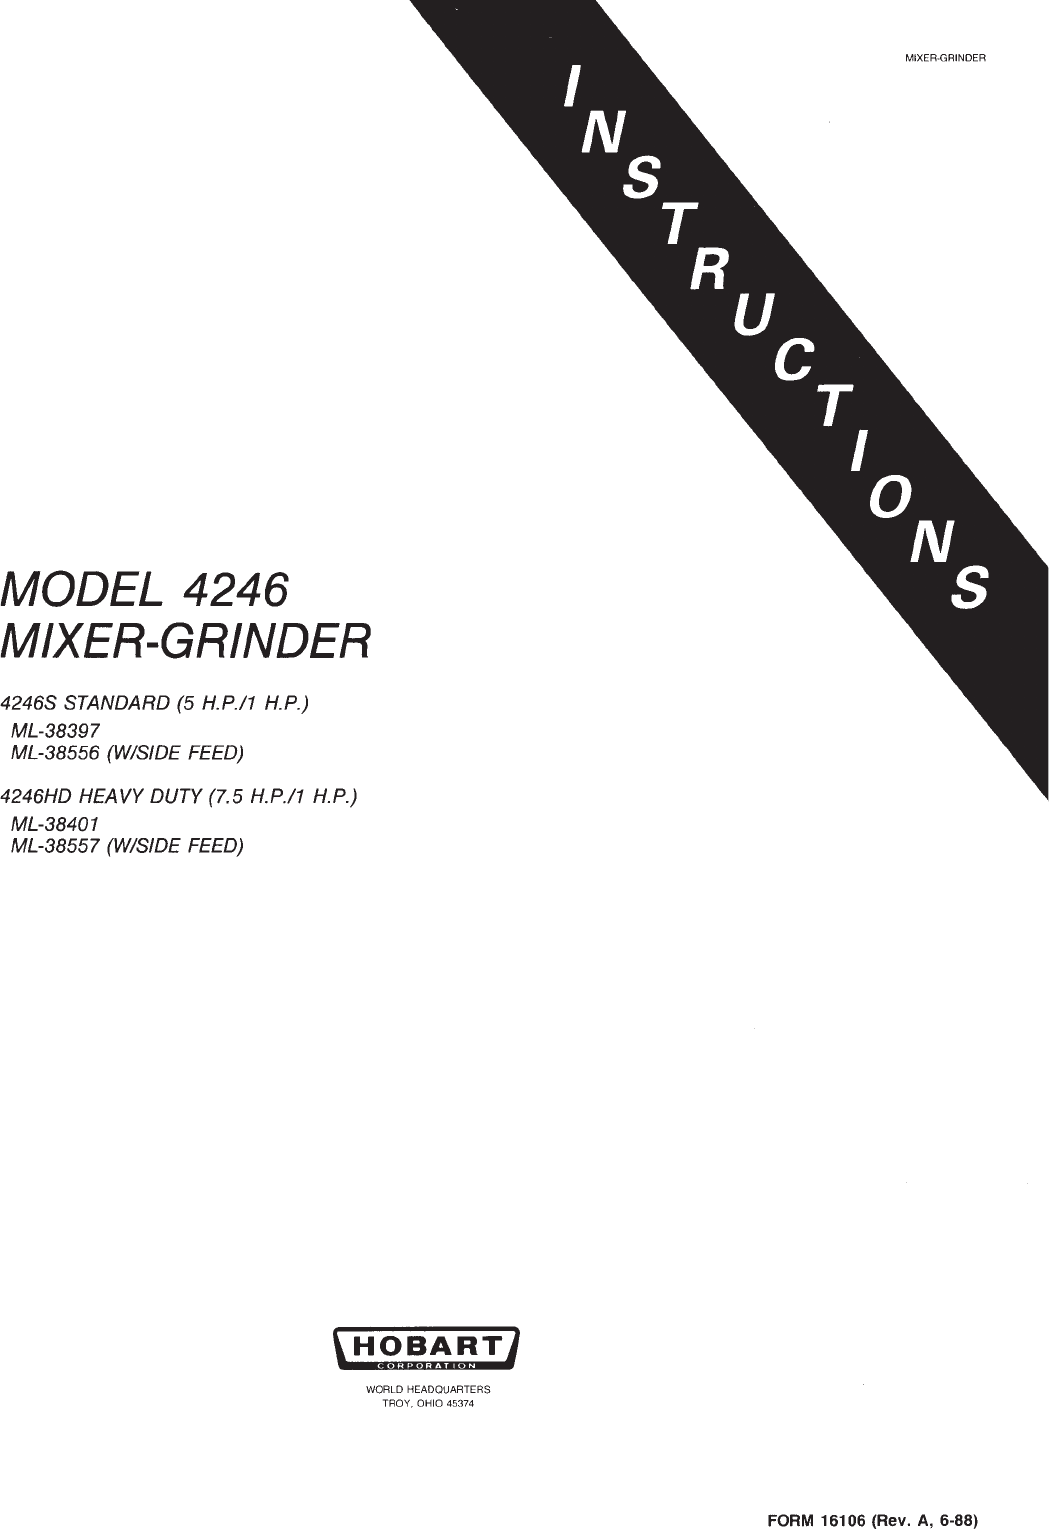 Download Hobart Mixer 4246 manual and user guides (page 1